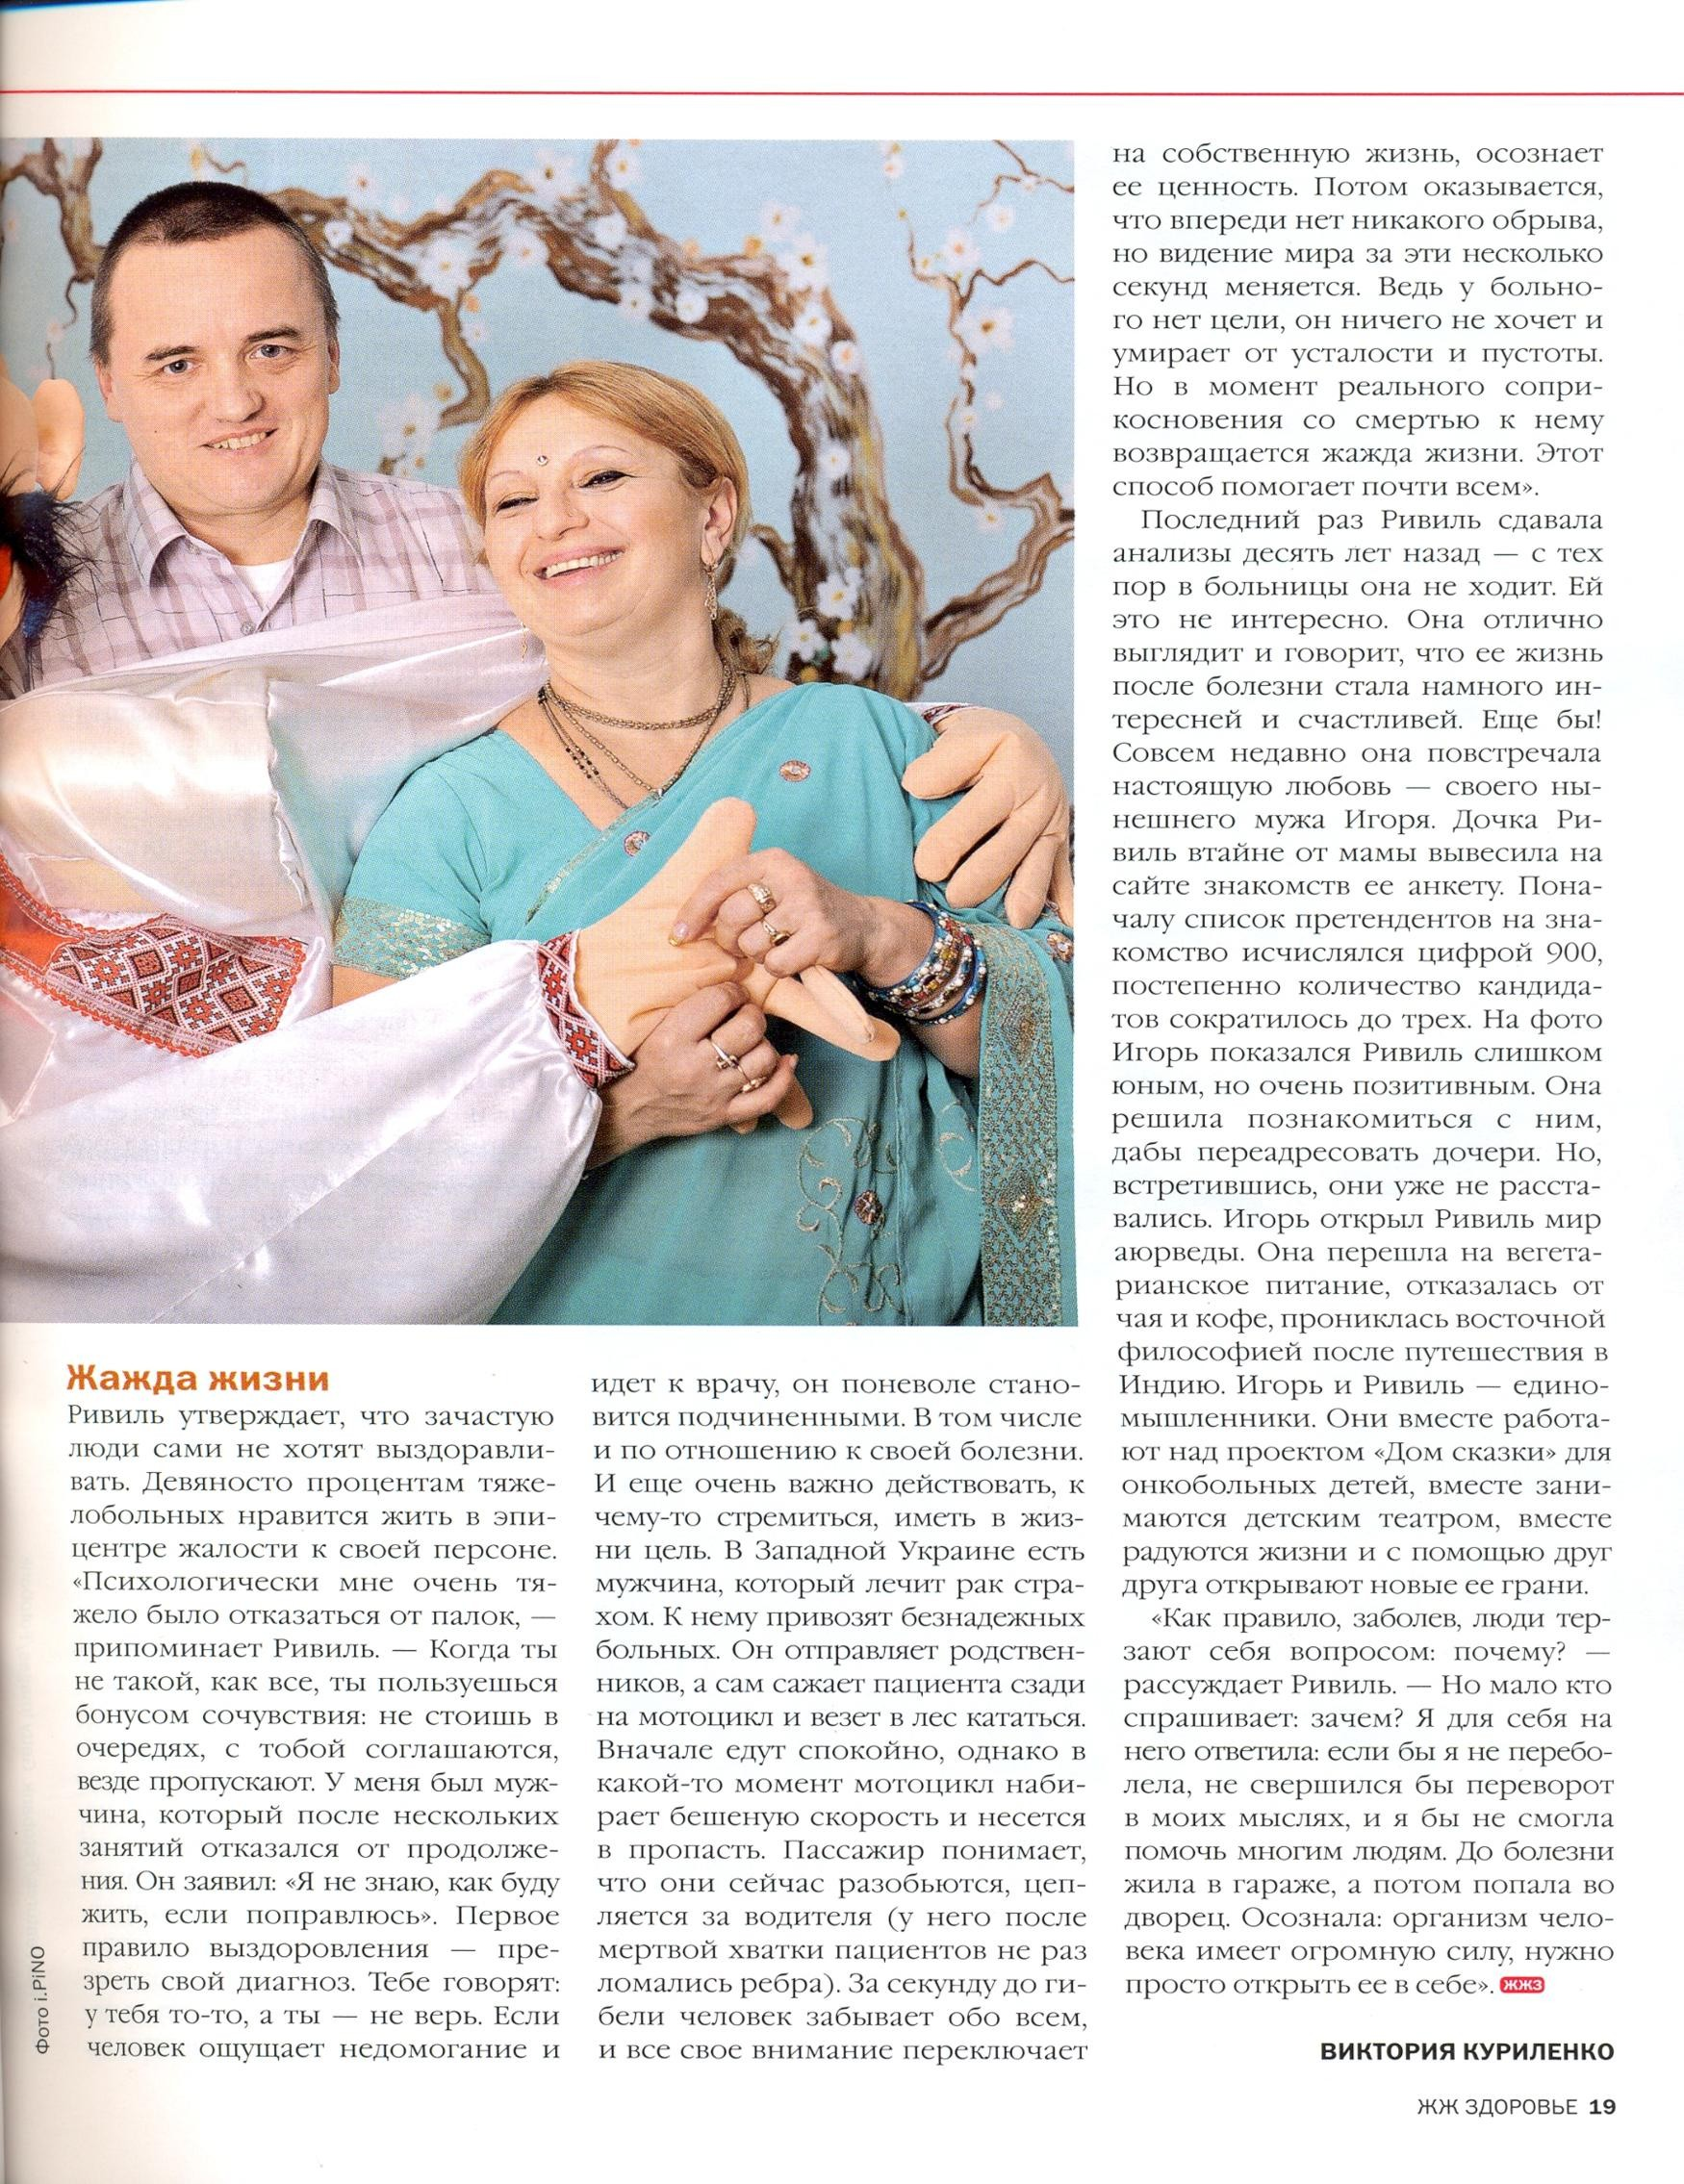 Page 13 from \'Zdorovie052010\'_page1_image1